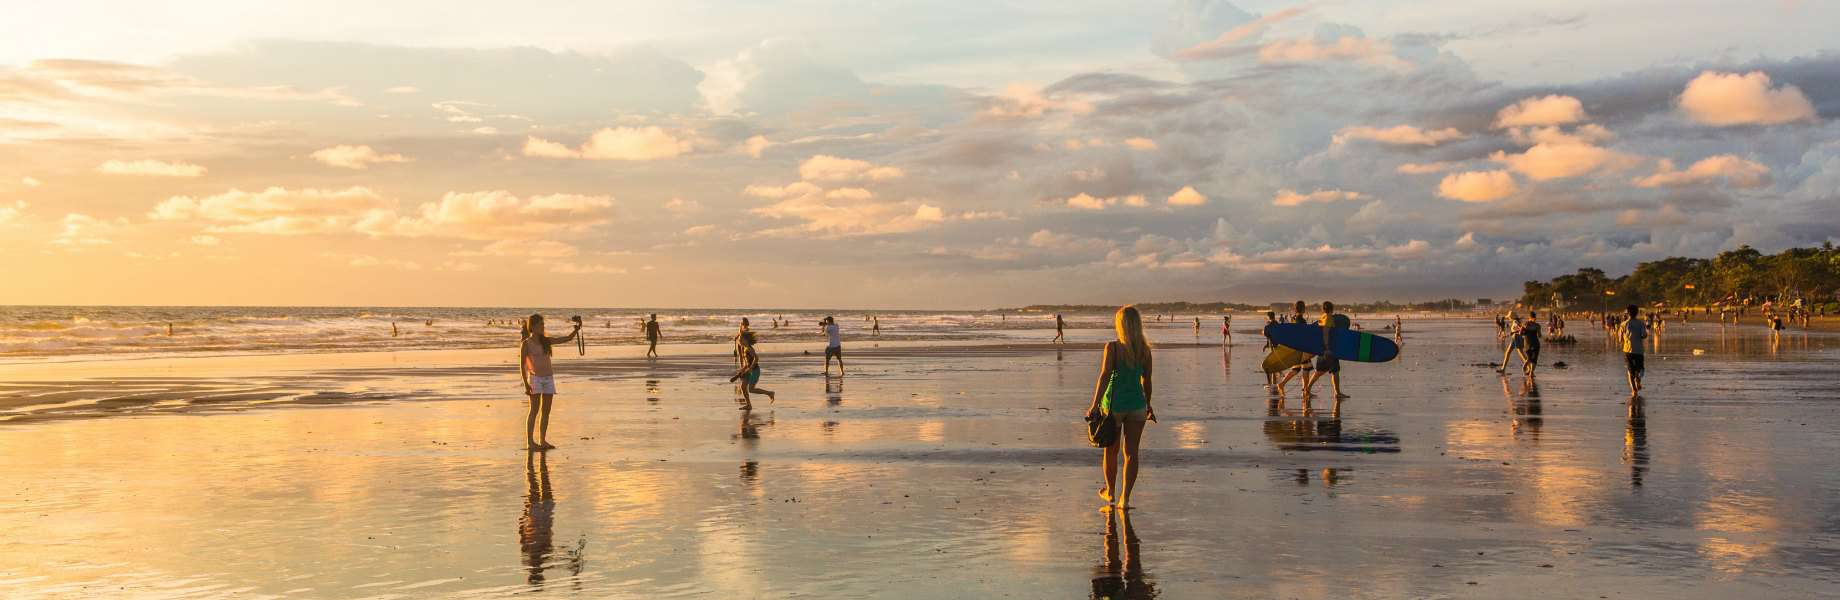 Explore Bali with Emirates – 7 Nights from $1099